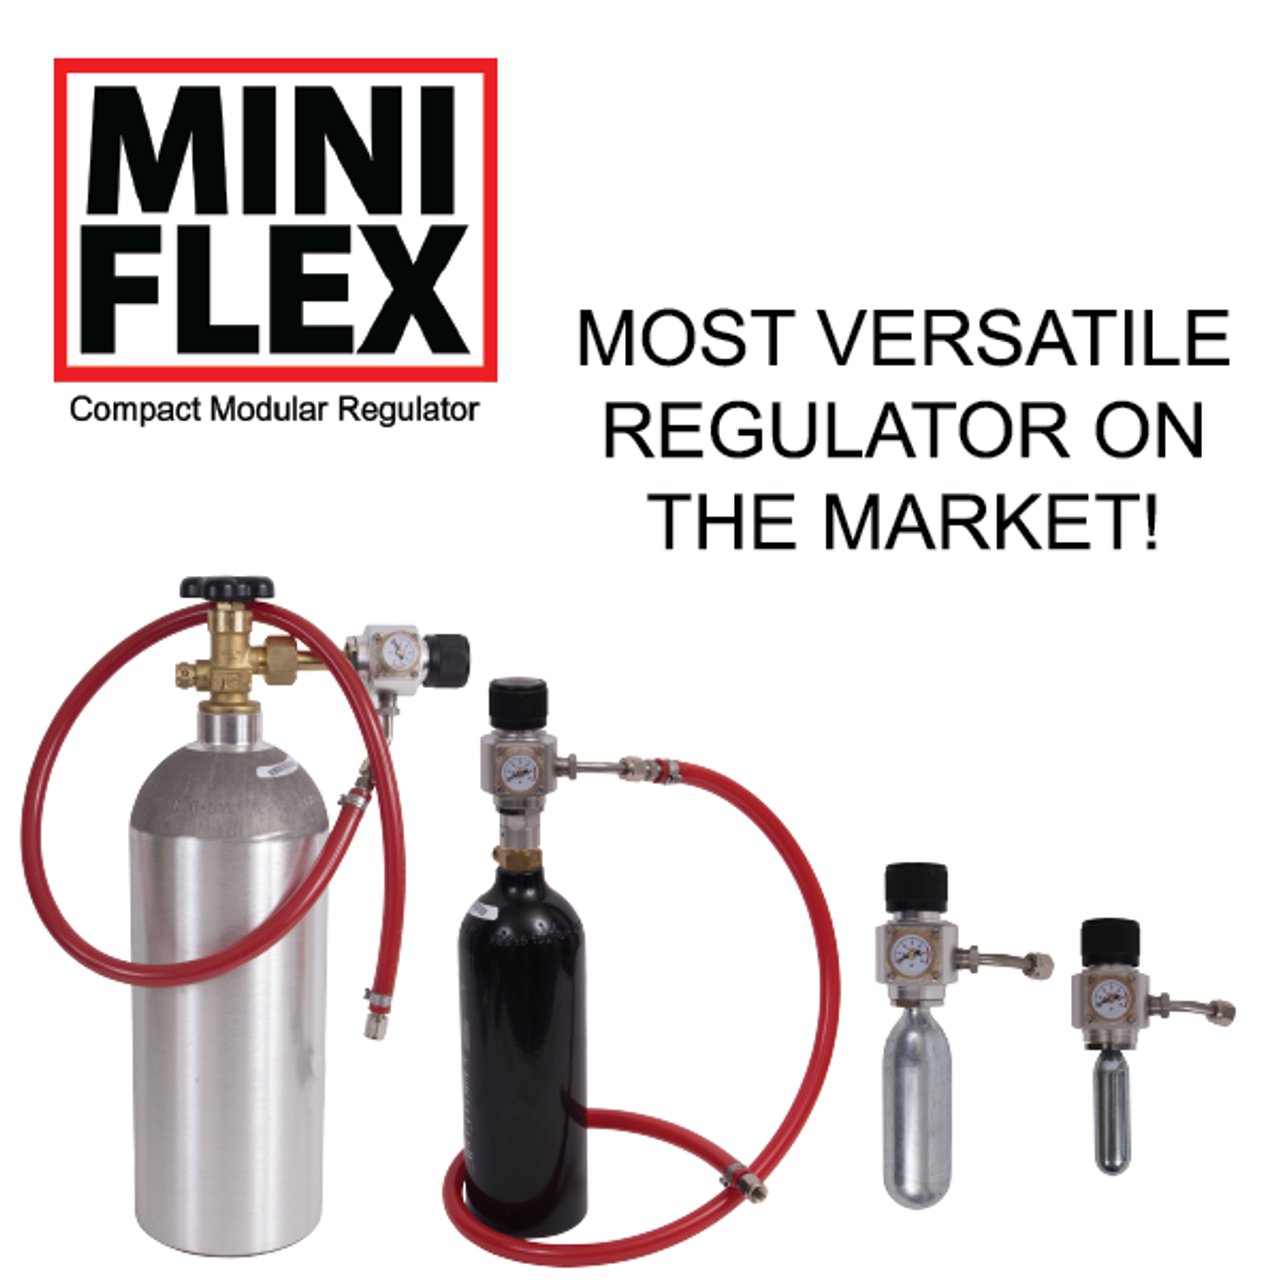 Mini Flex - Compact Modular Regulator